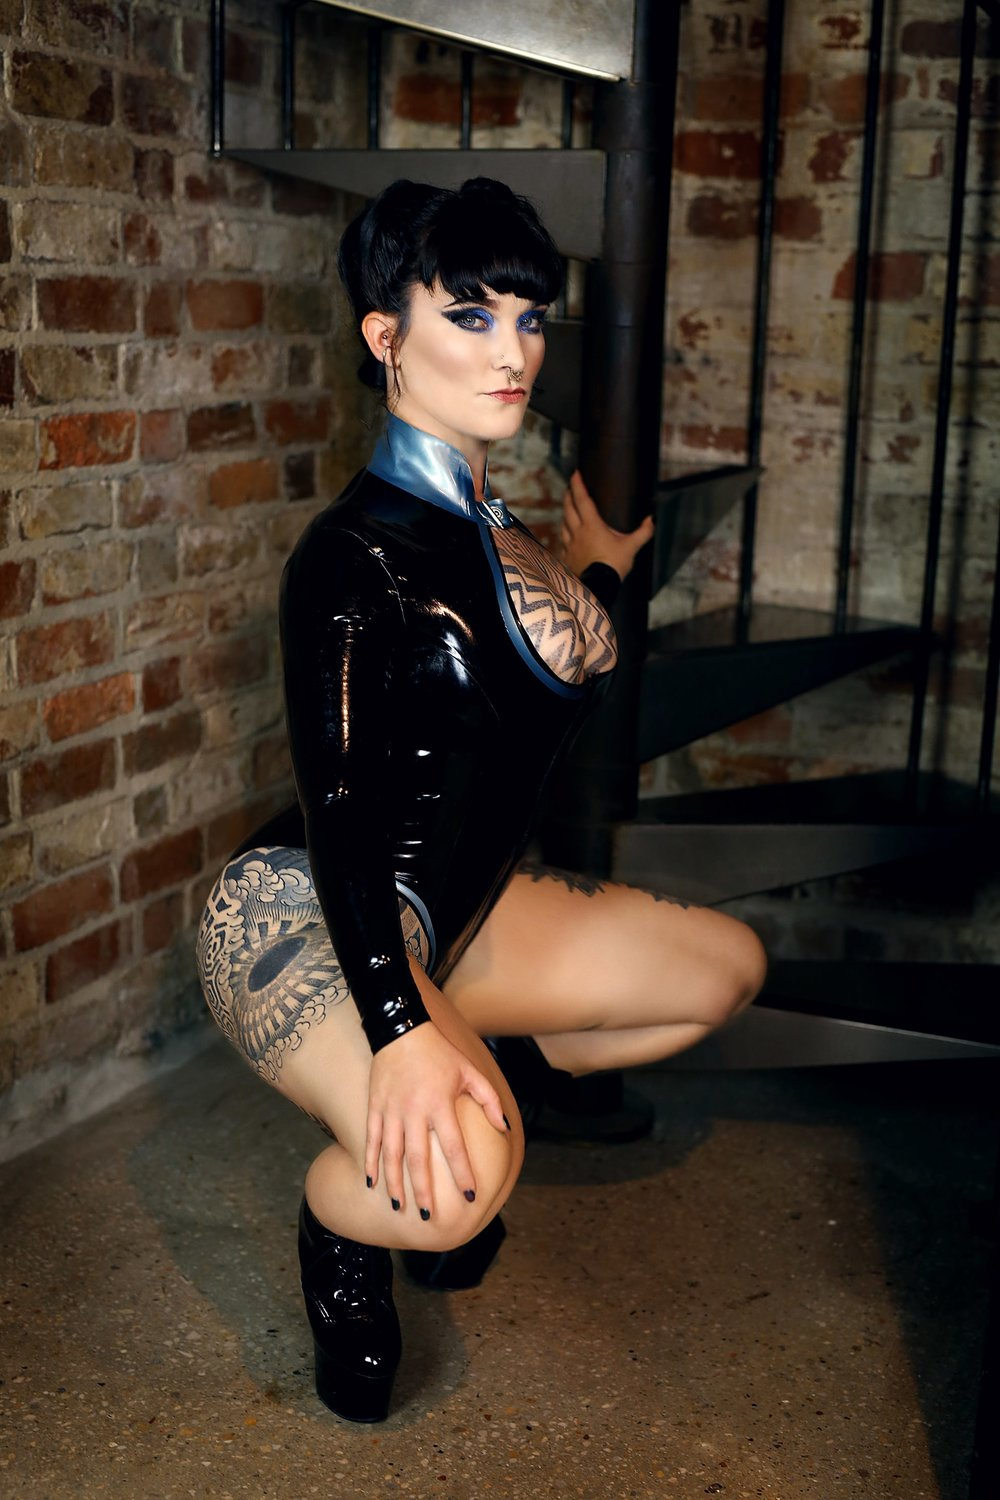 Miss Tallula latex mistress, hobart mistress, kinky dominatrix